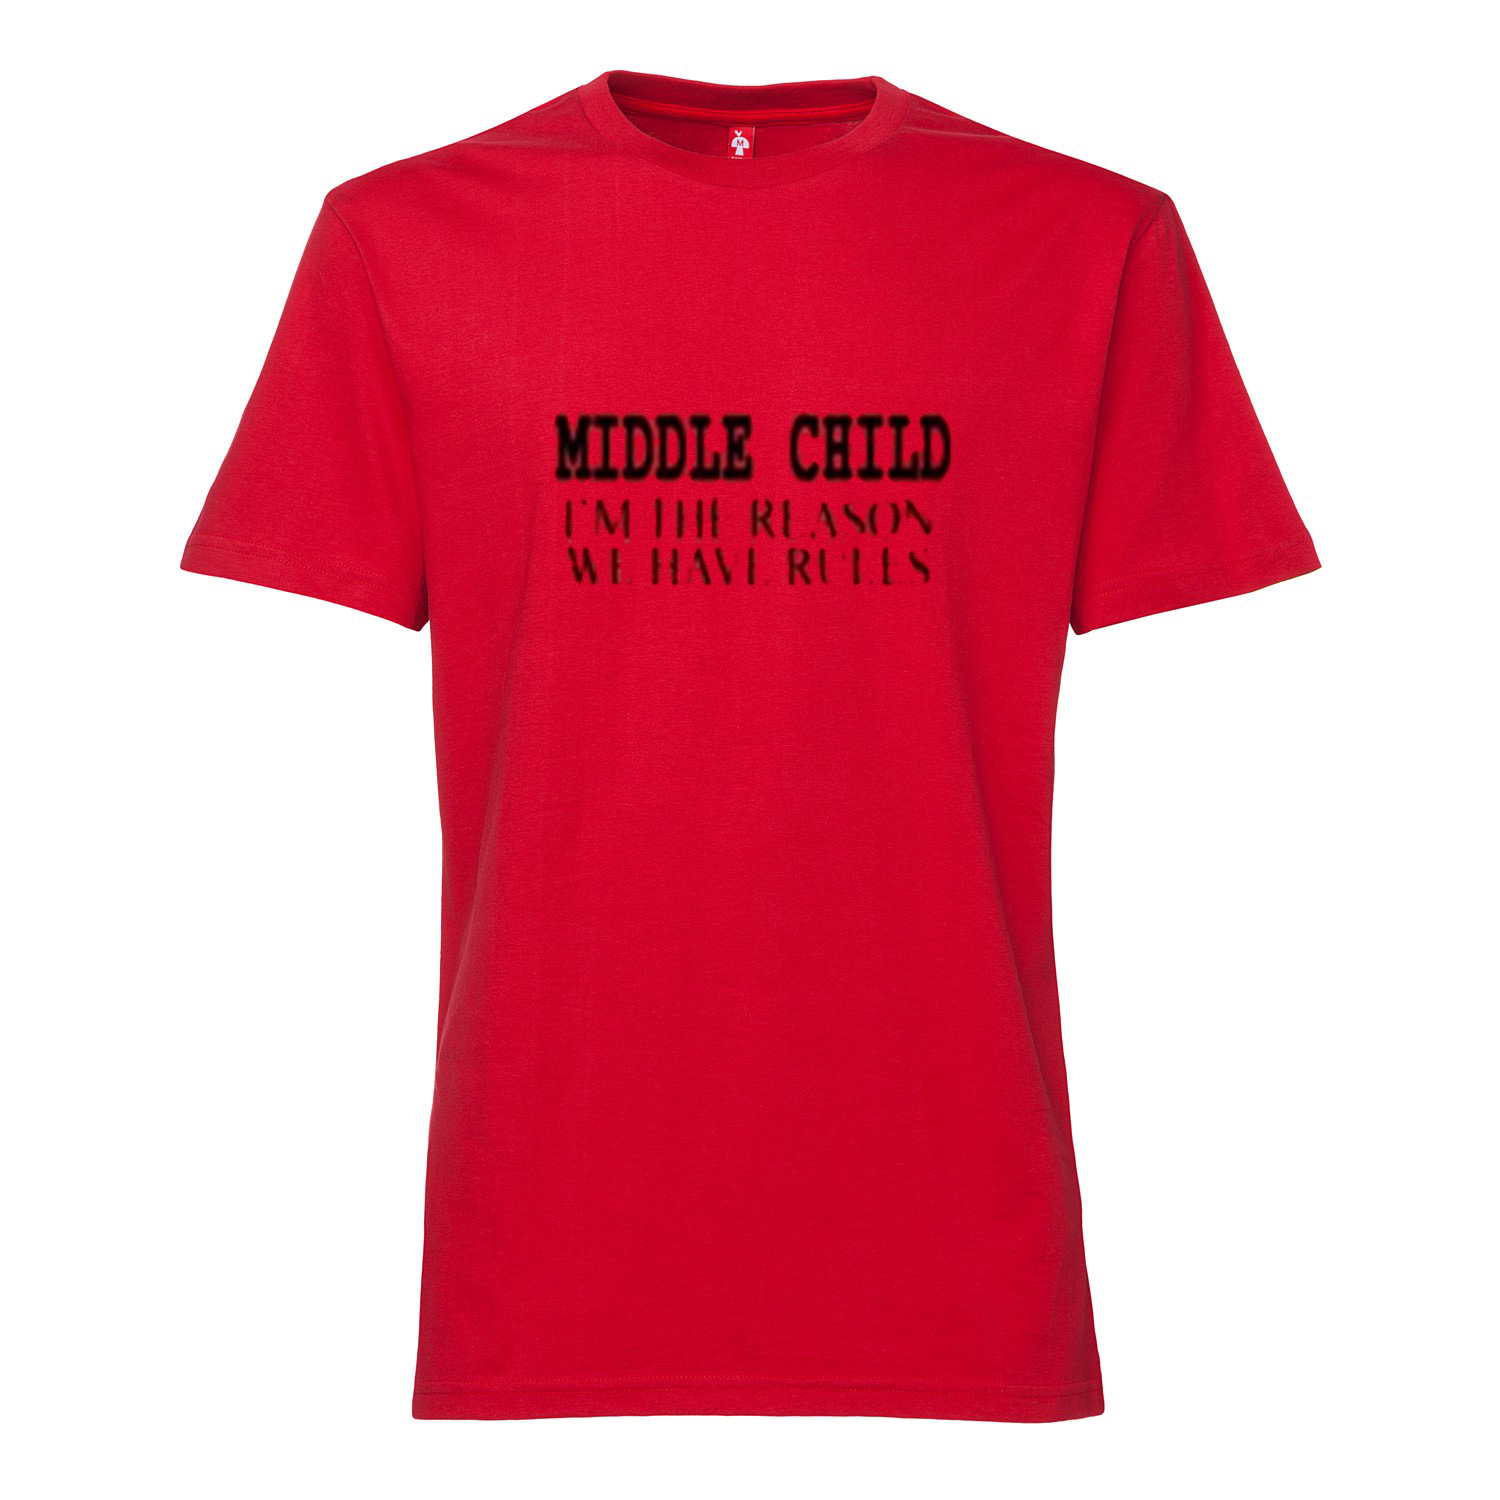 5d4bd5ff Middle Child i'm the Reason we Have Rules T Shirt